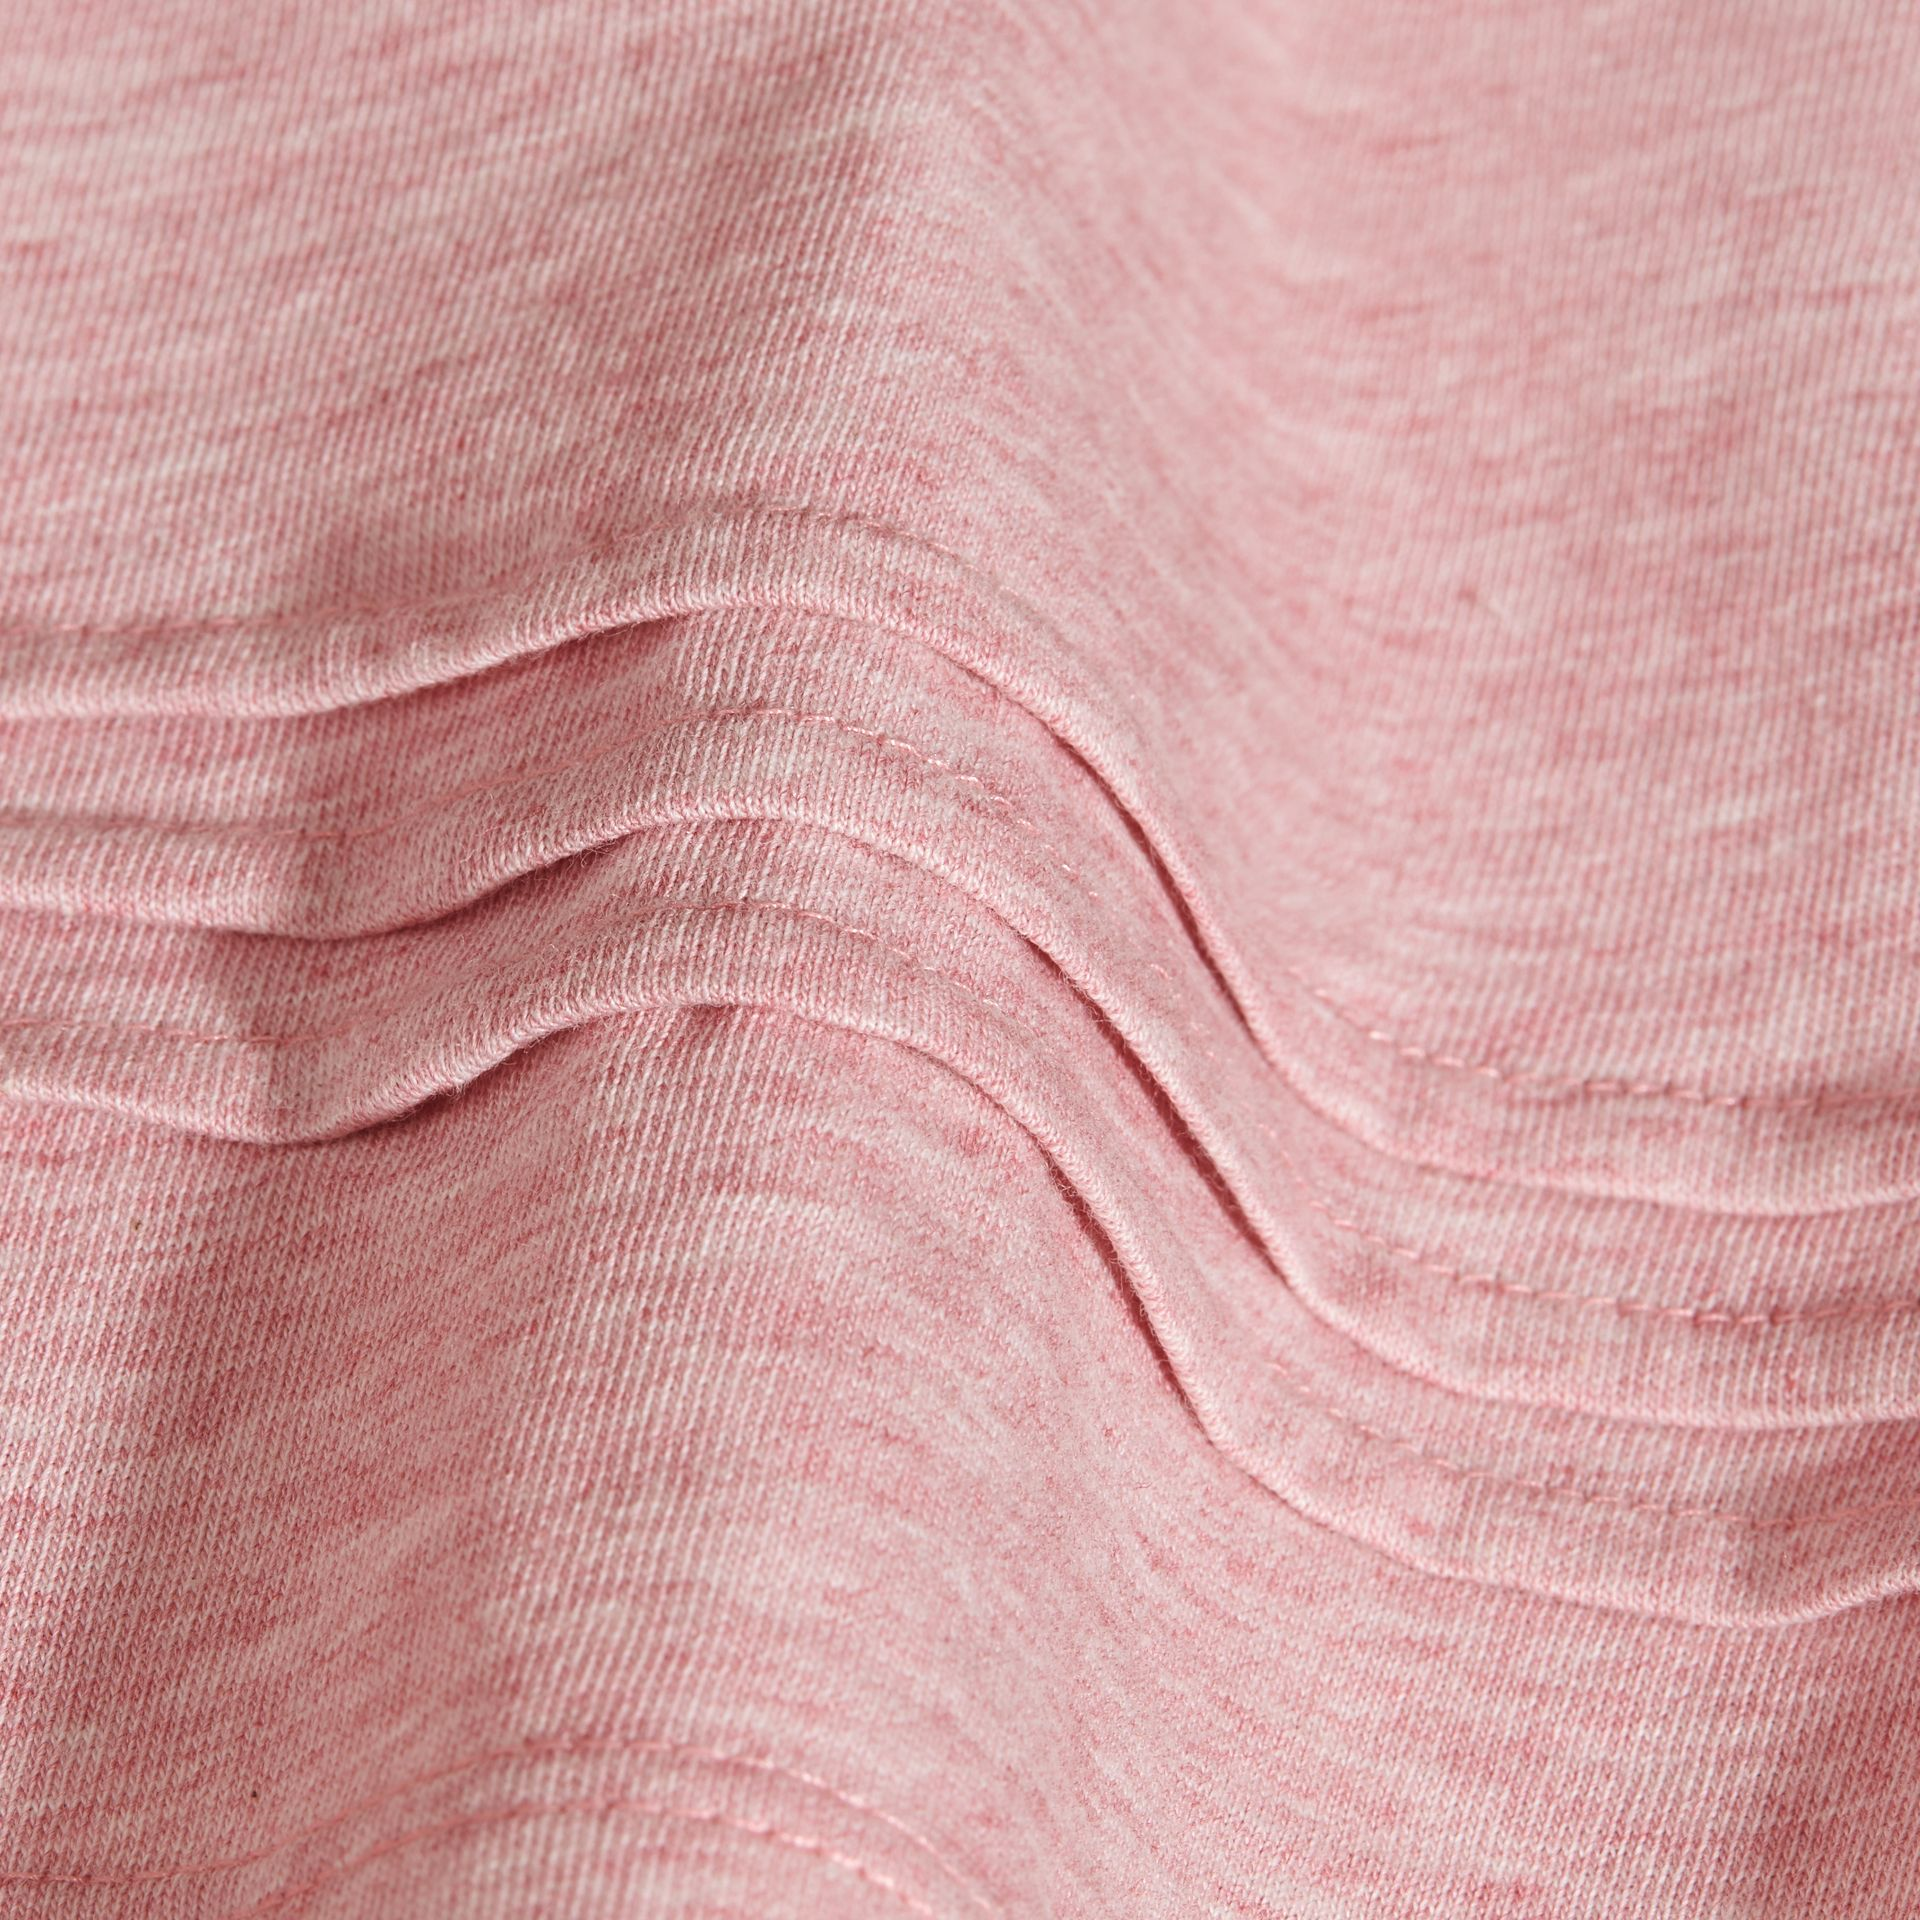 Pleat and Check Detail Cotton T-shirt in Light Copper Pink Melange | Burberry - gallery image 2